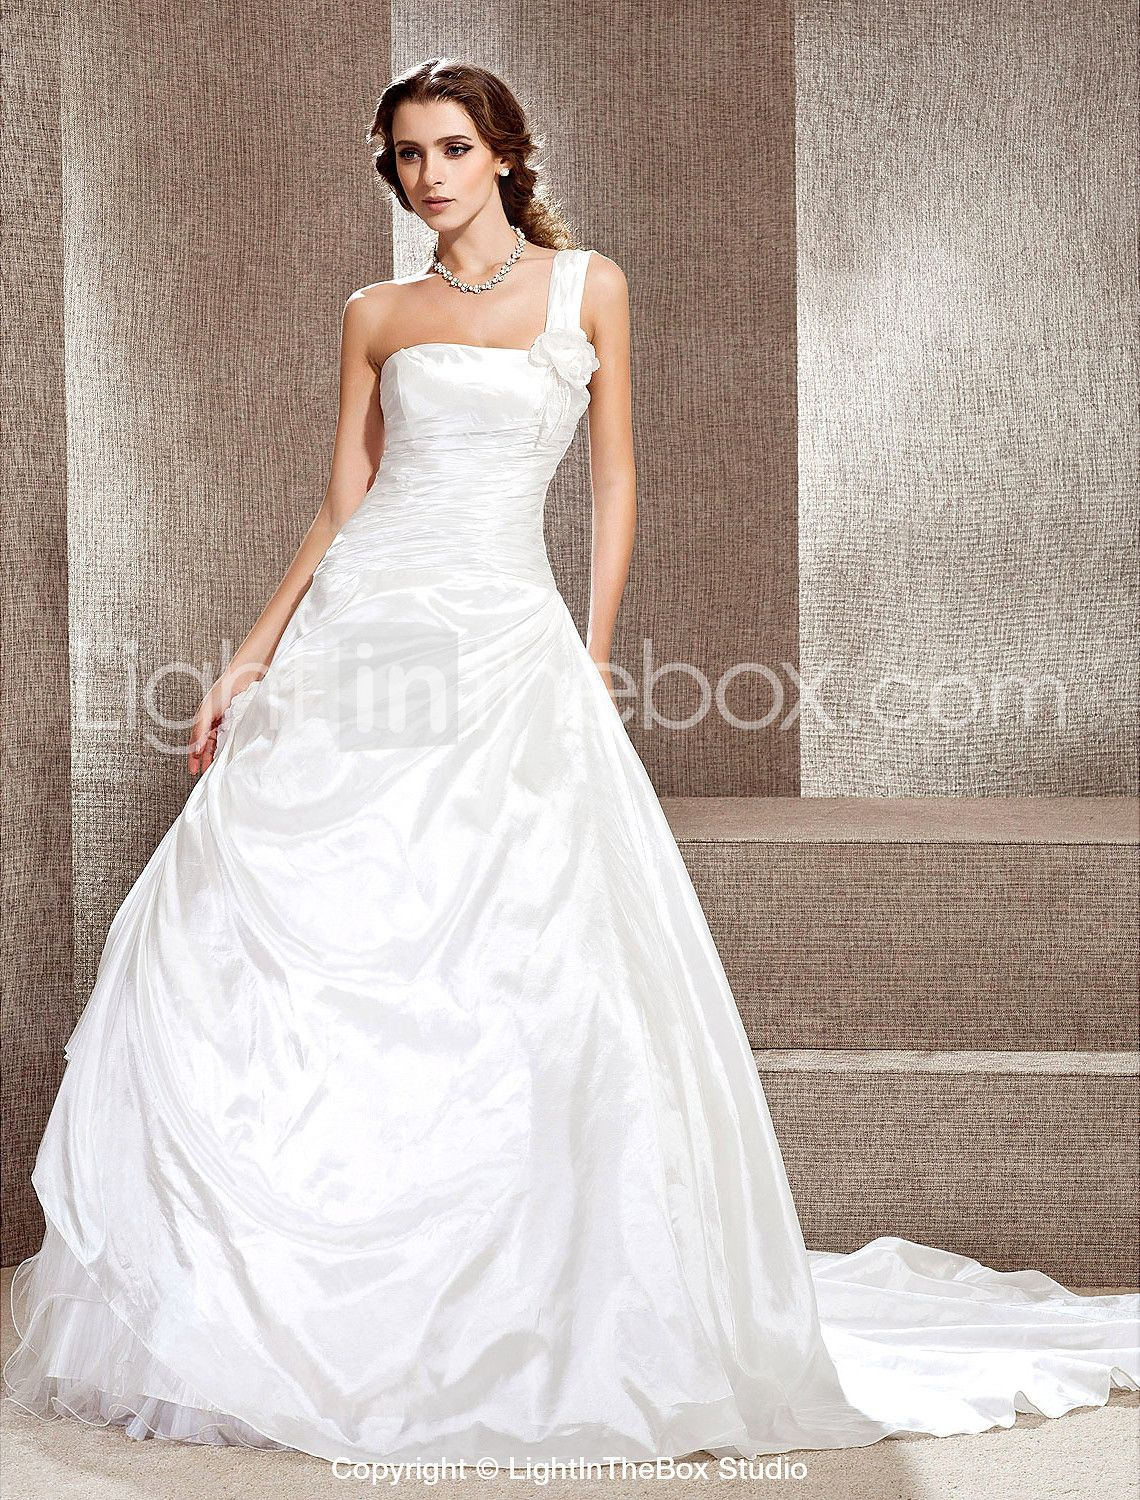 Lightinthebox wedding dresses  Aline One Shoulder Cathedral Train Taffeta Wedding Dress  Books